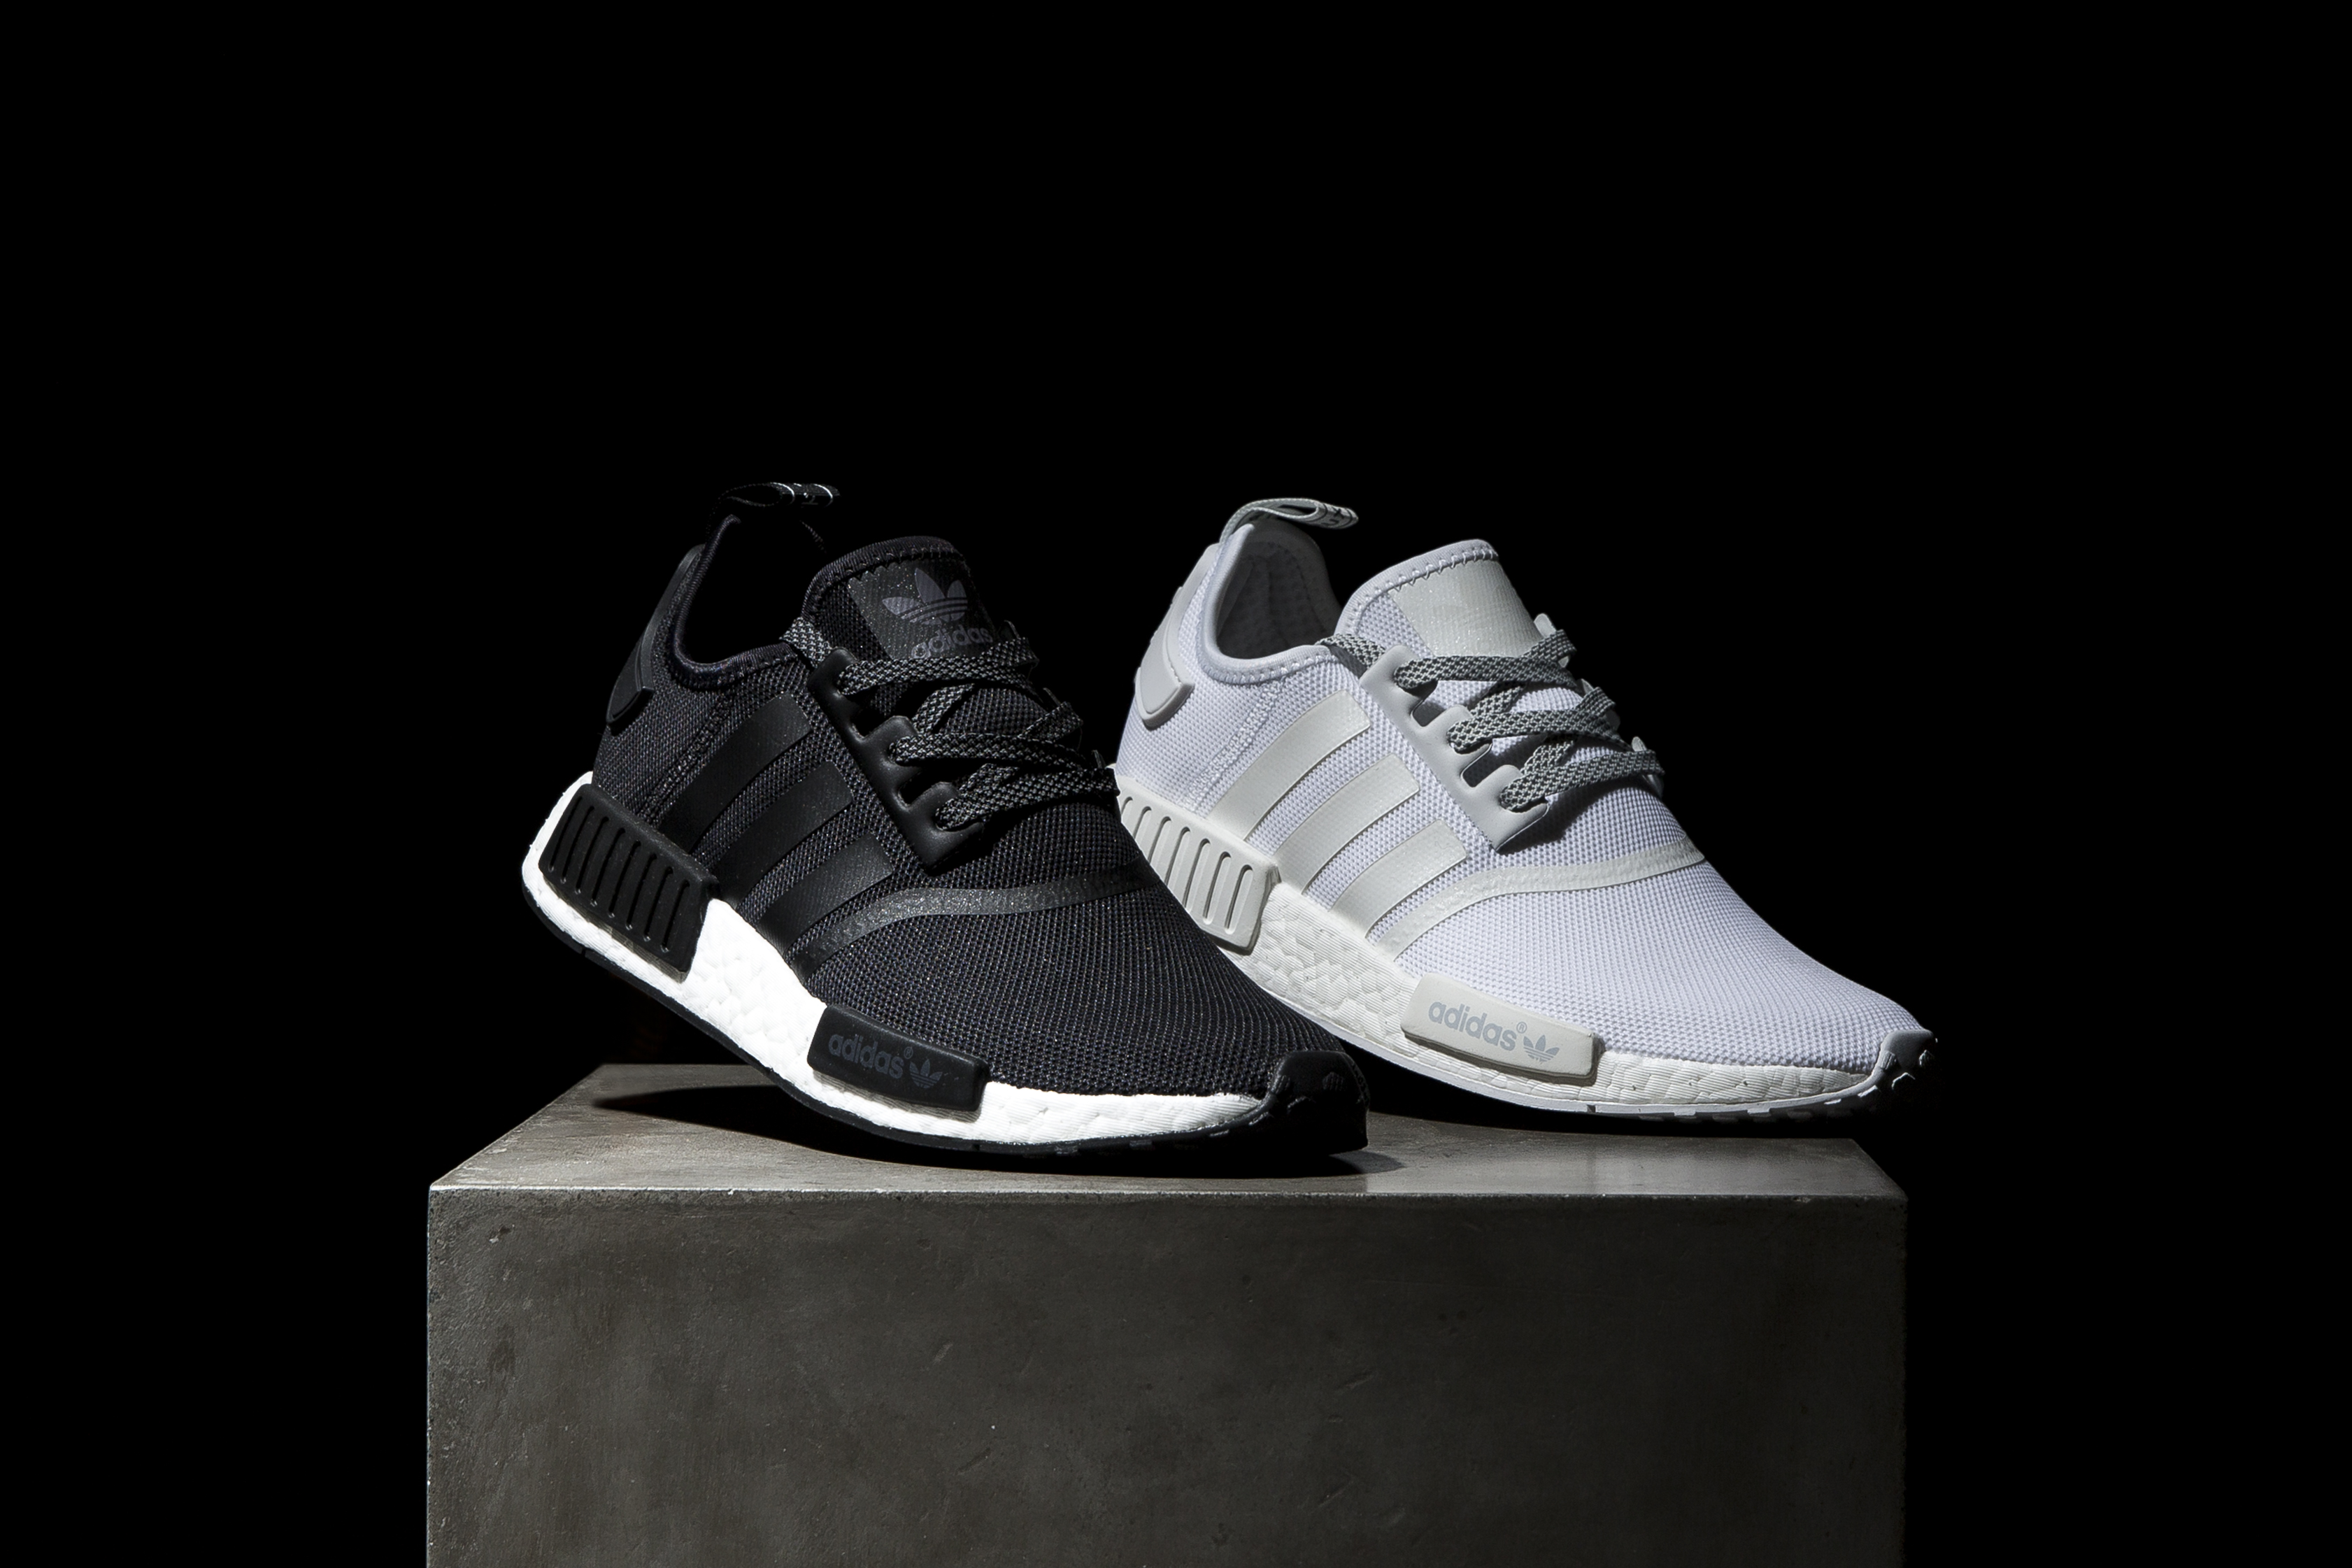 Cheap Adidas nmd runner solid gris guide sneaker online